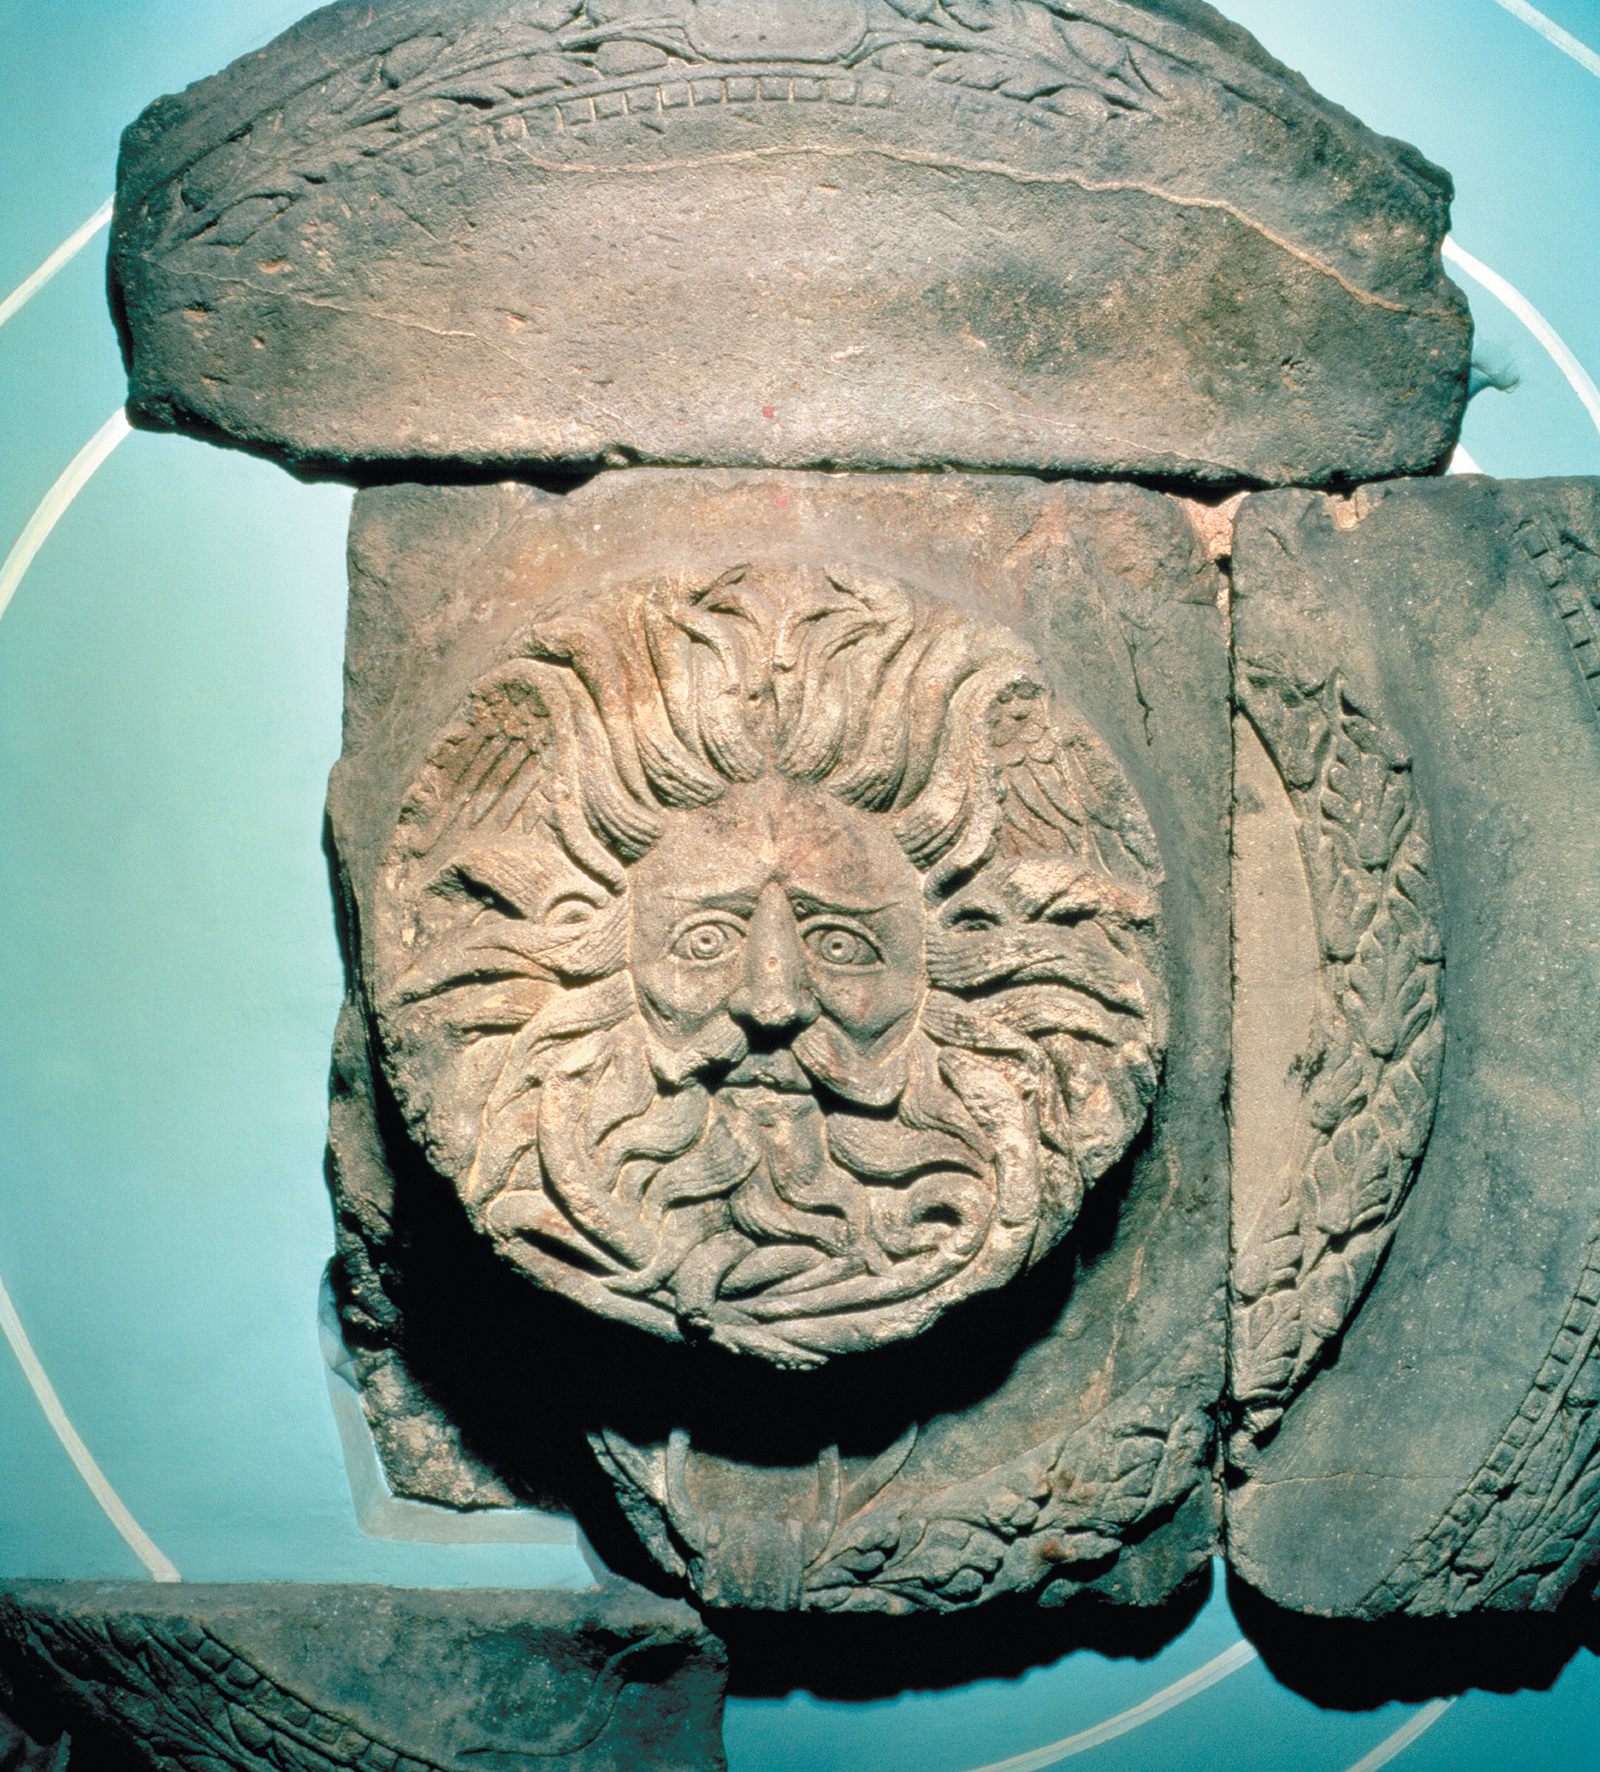 A relief from a pediment to a temple in Bath, England, thought to show a gorgon's head, late first century CE